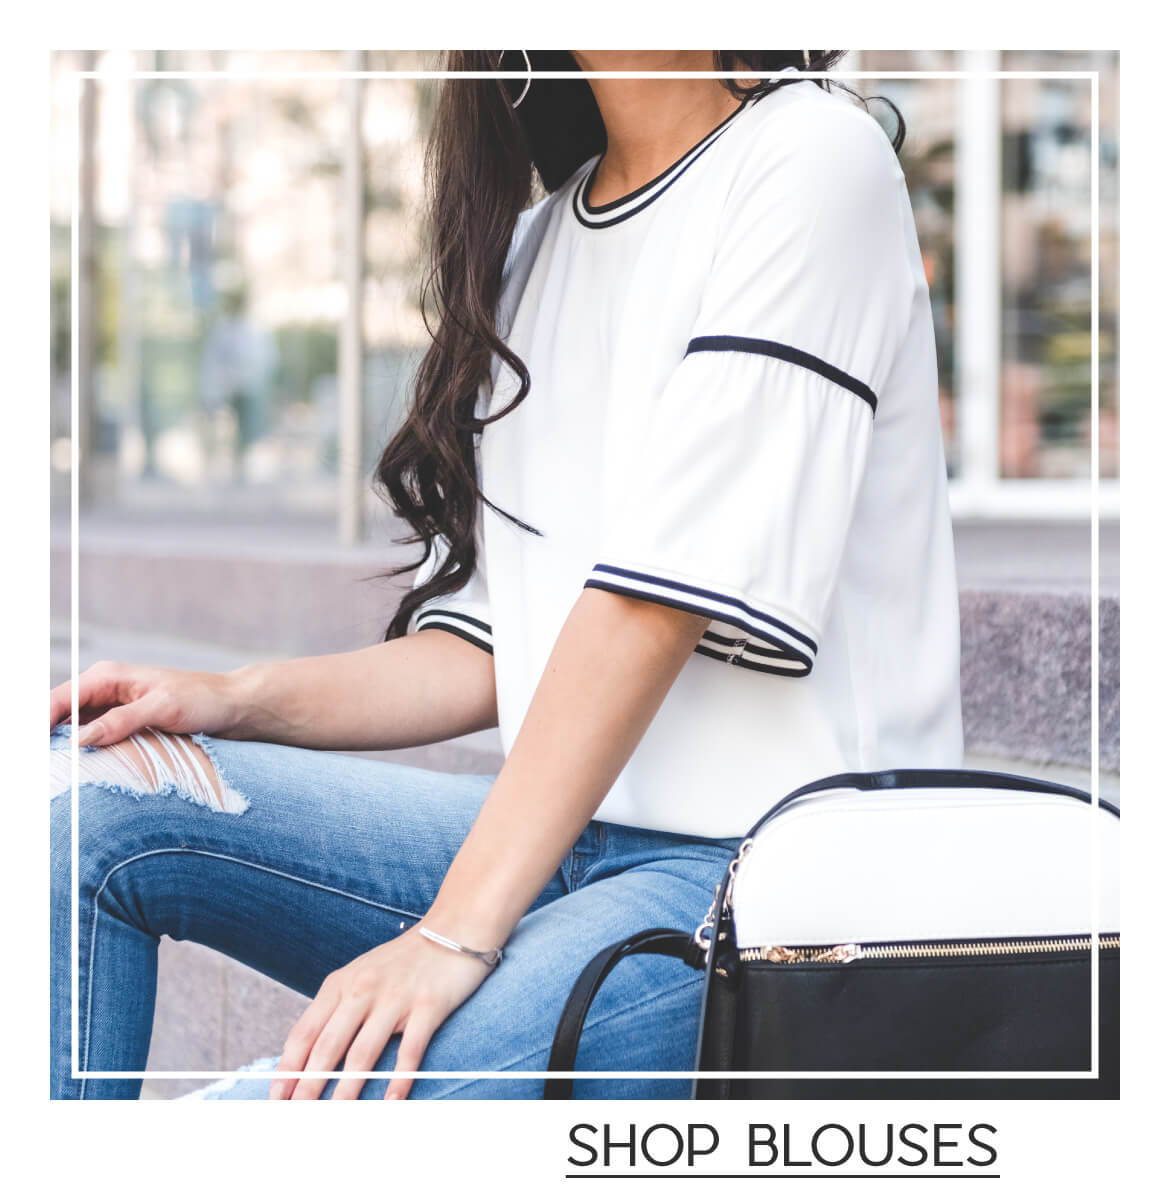 blouses, tops for women, boutique clothing